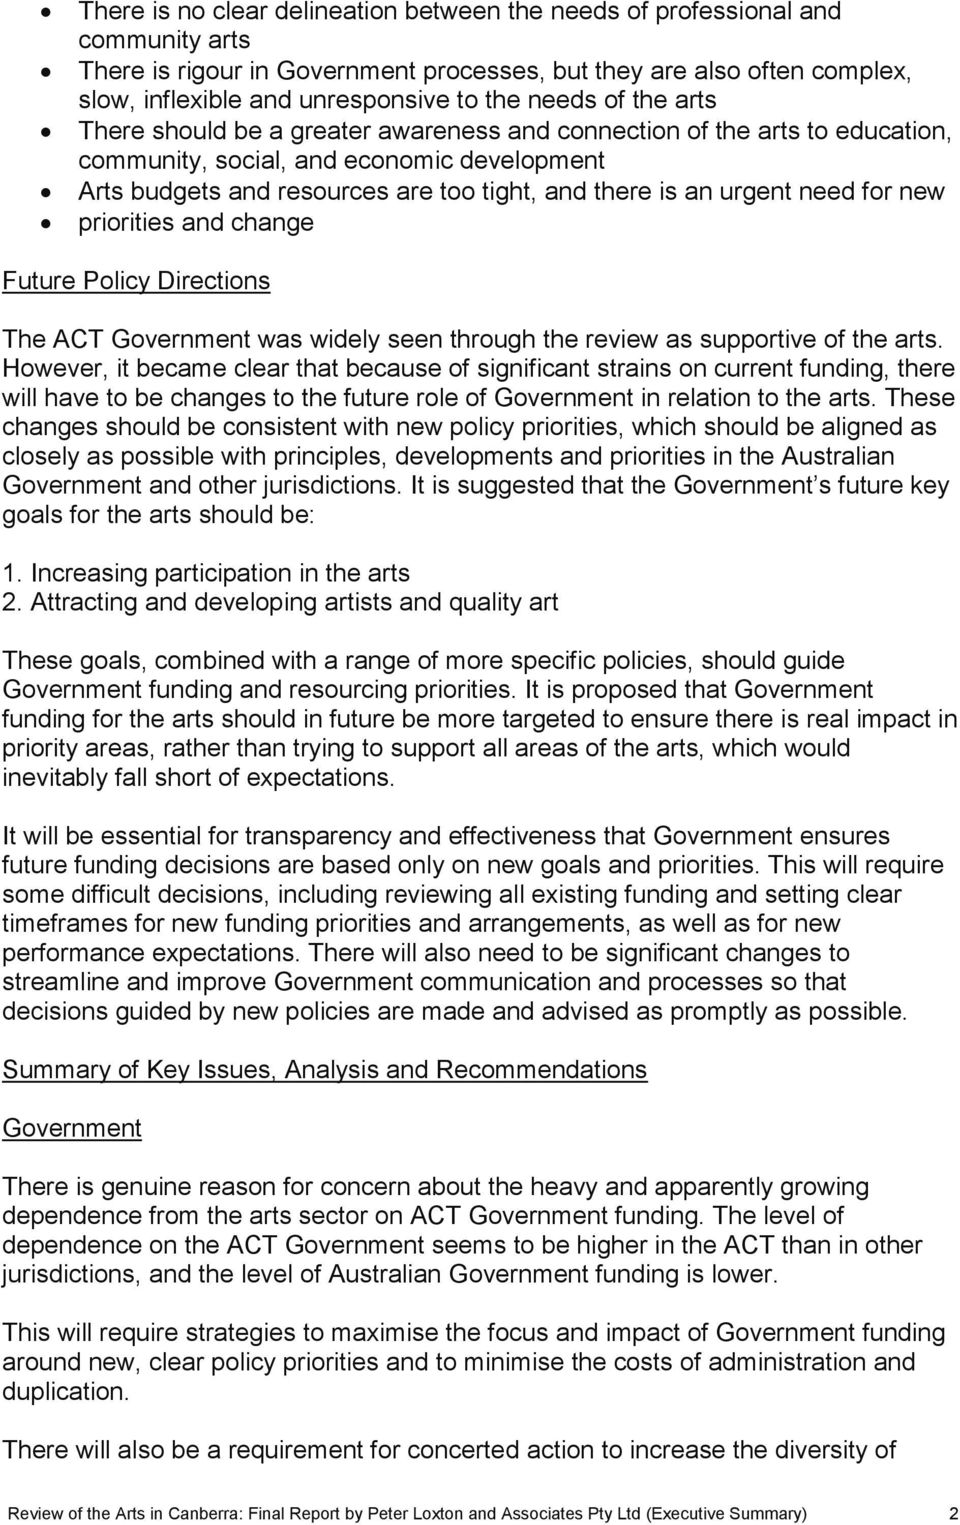 urgent need for new priorities and change Future Policy Directions The ACT Government was widely seen through the review as supportive of the arts.